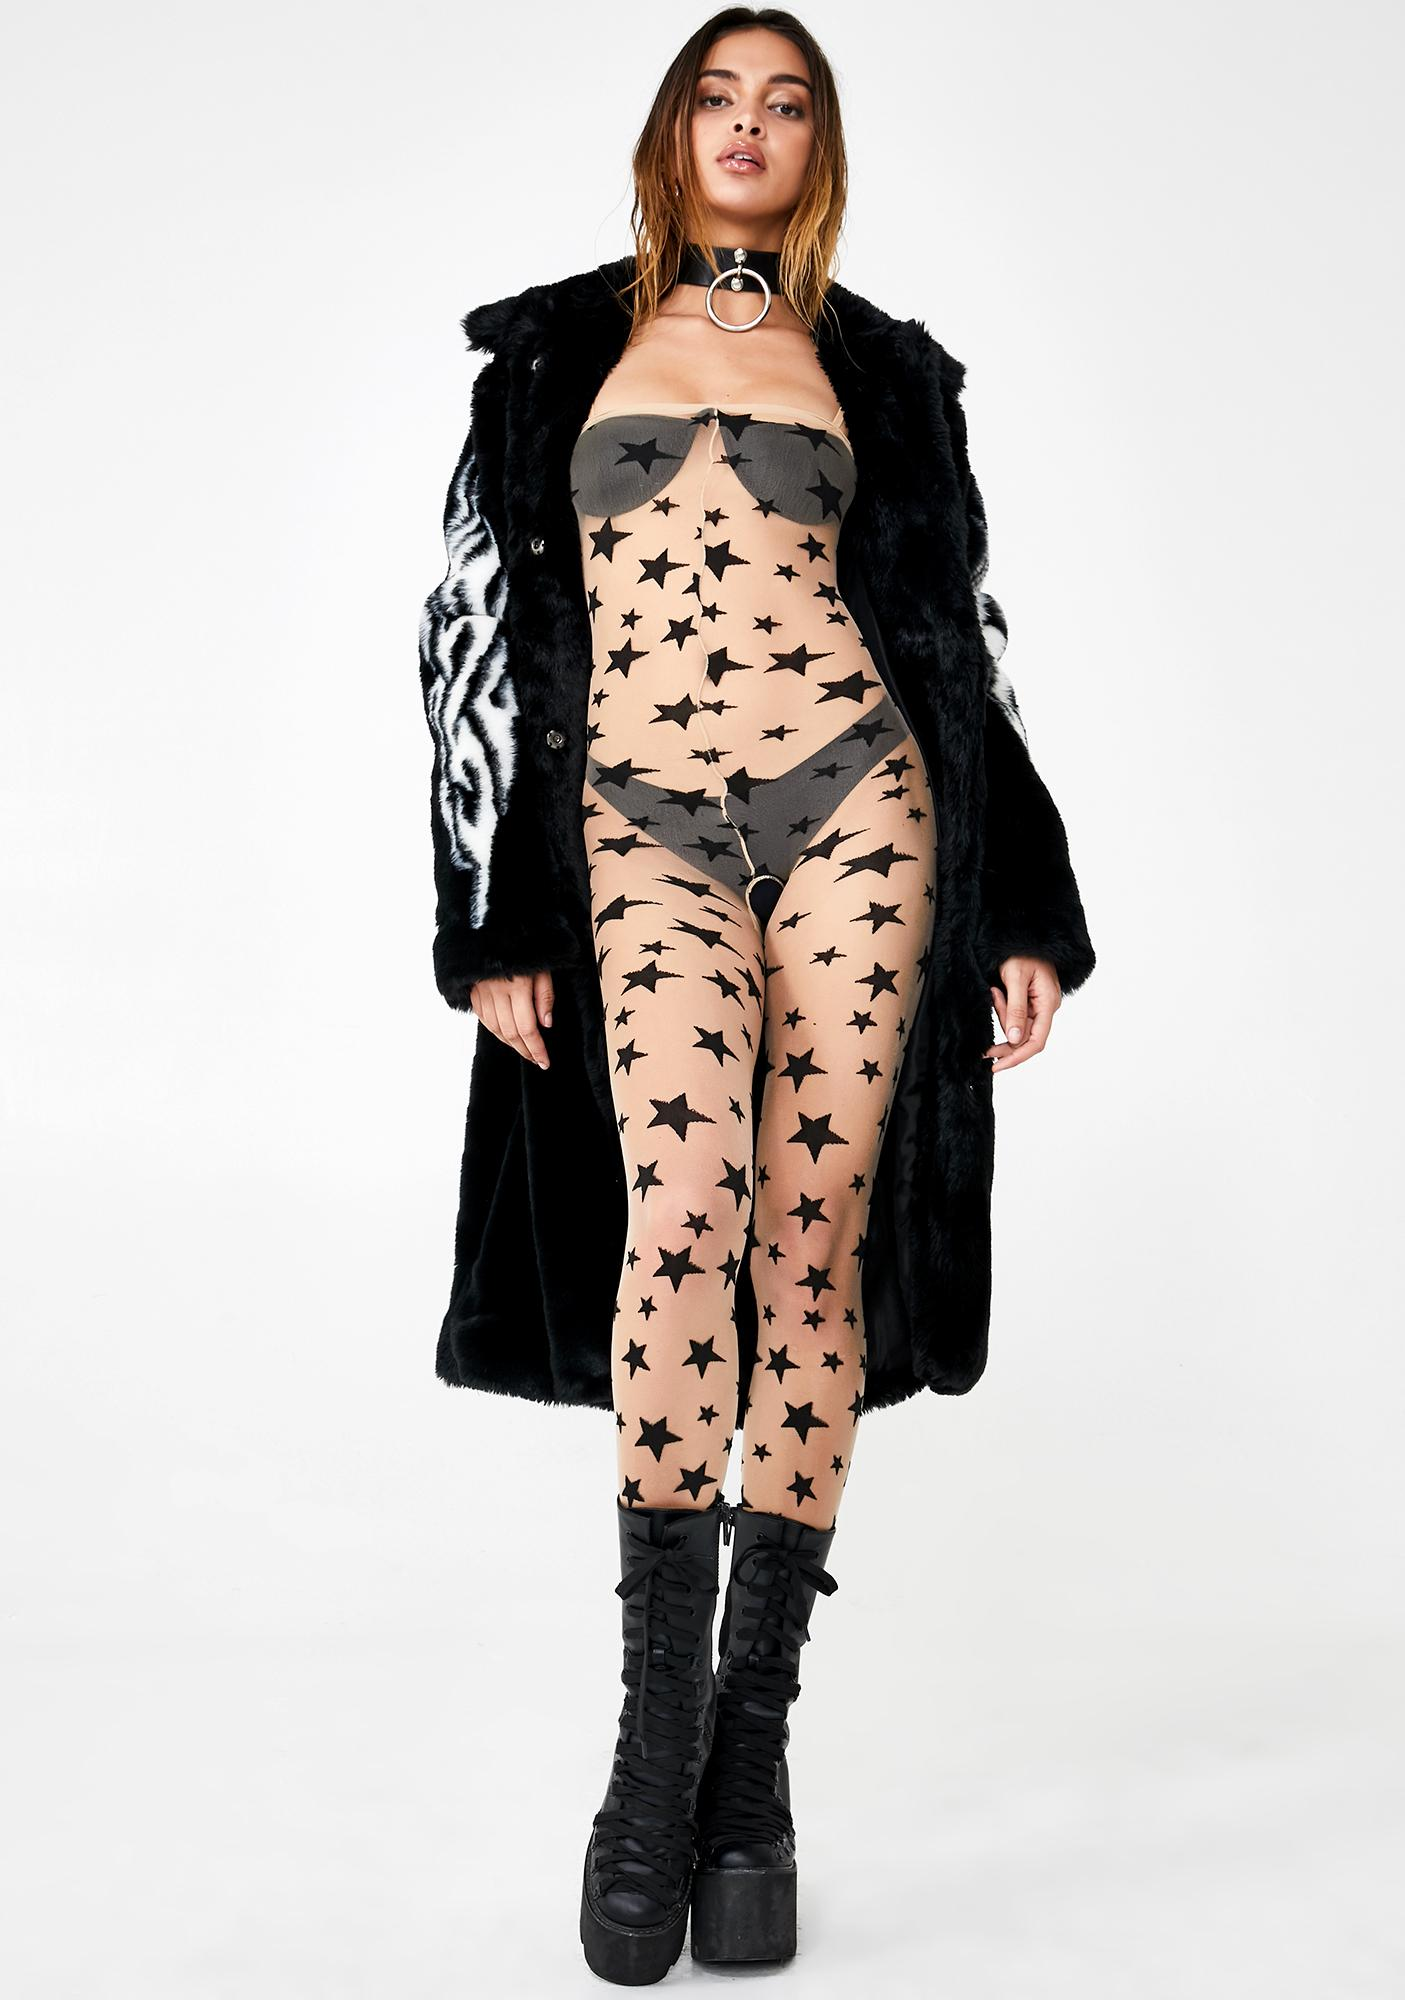 Star Crossed Lover Sheer Bodystocking